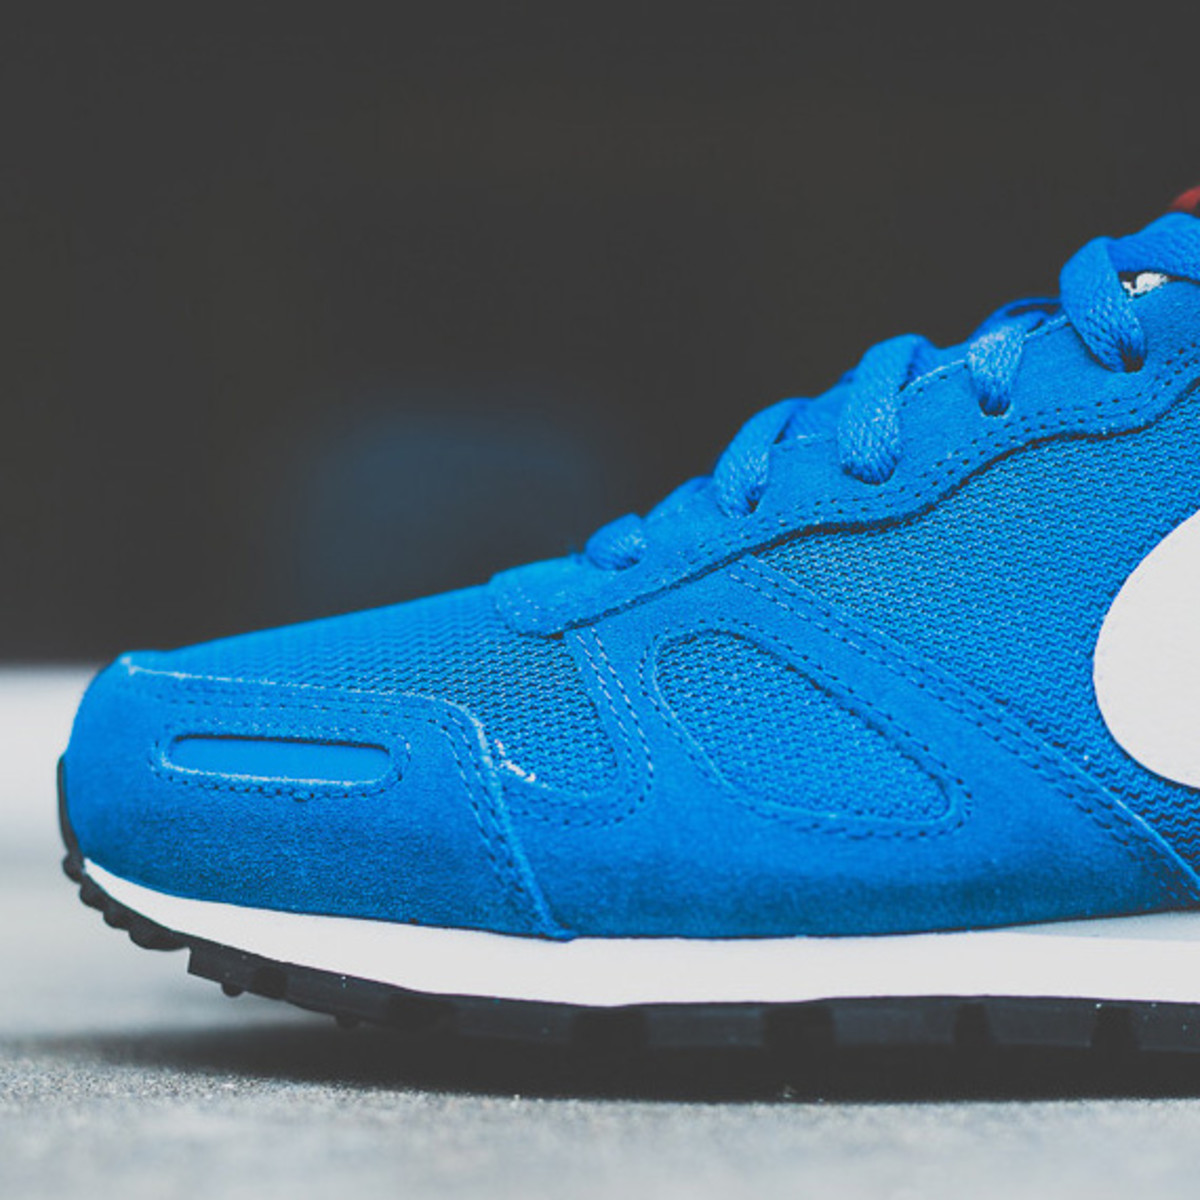 nike-air-waffle-trainer-military-blue-02a